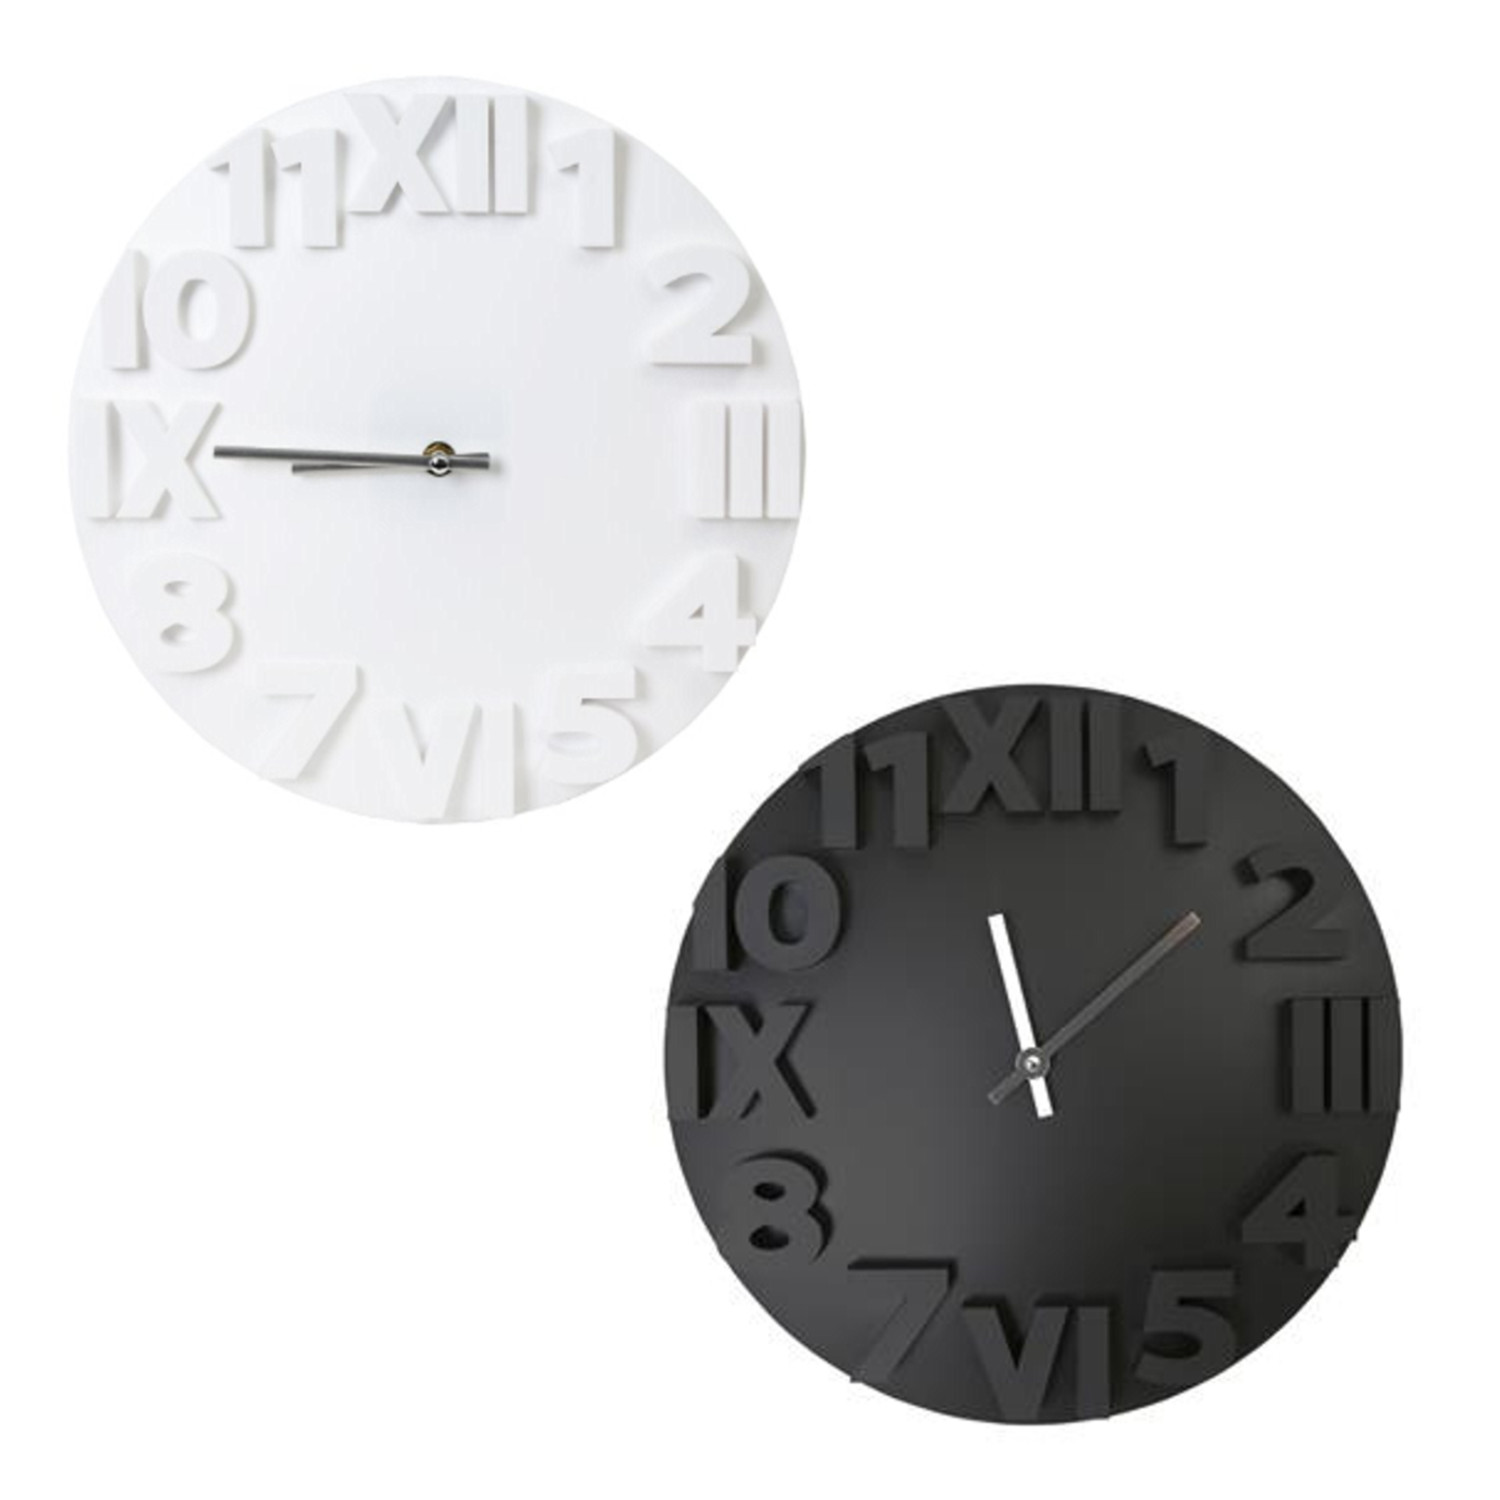 gro e wanduhr modern in zwei farben platinet wall clock designer wand kunsstoff ebay. Black Bedroom Furniture Sets. Home Design Ideas